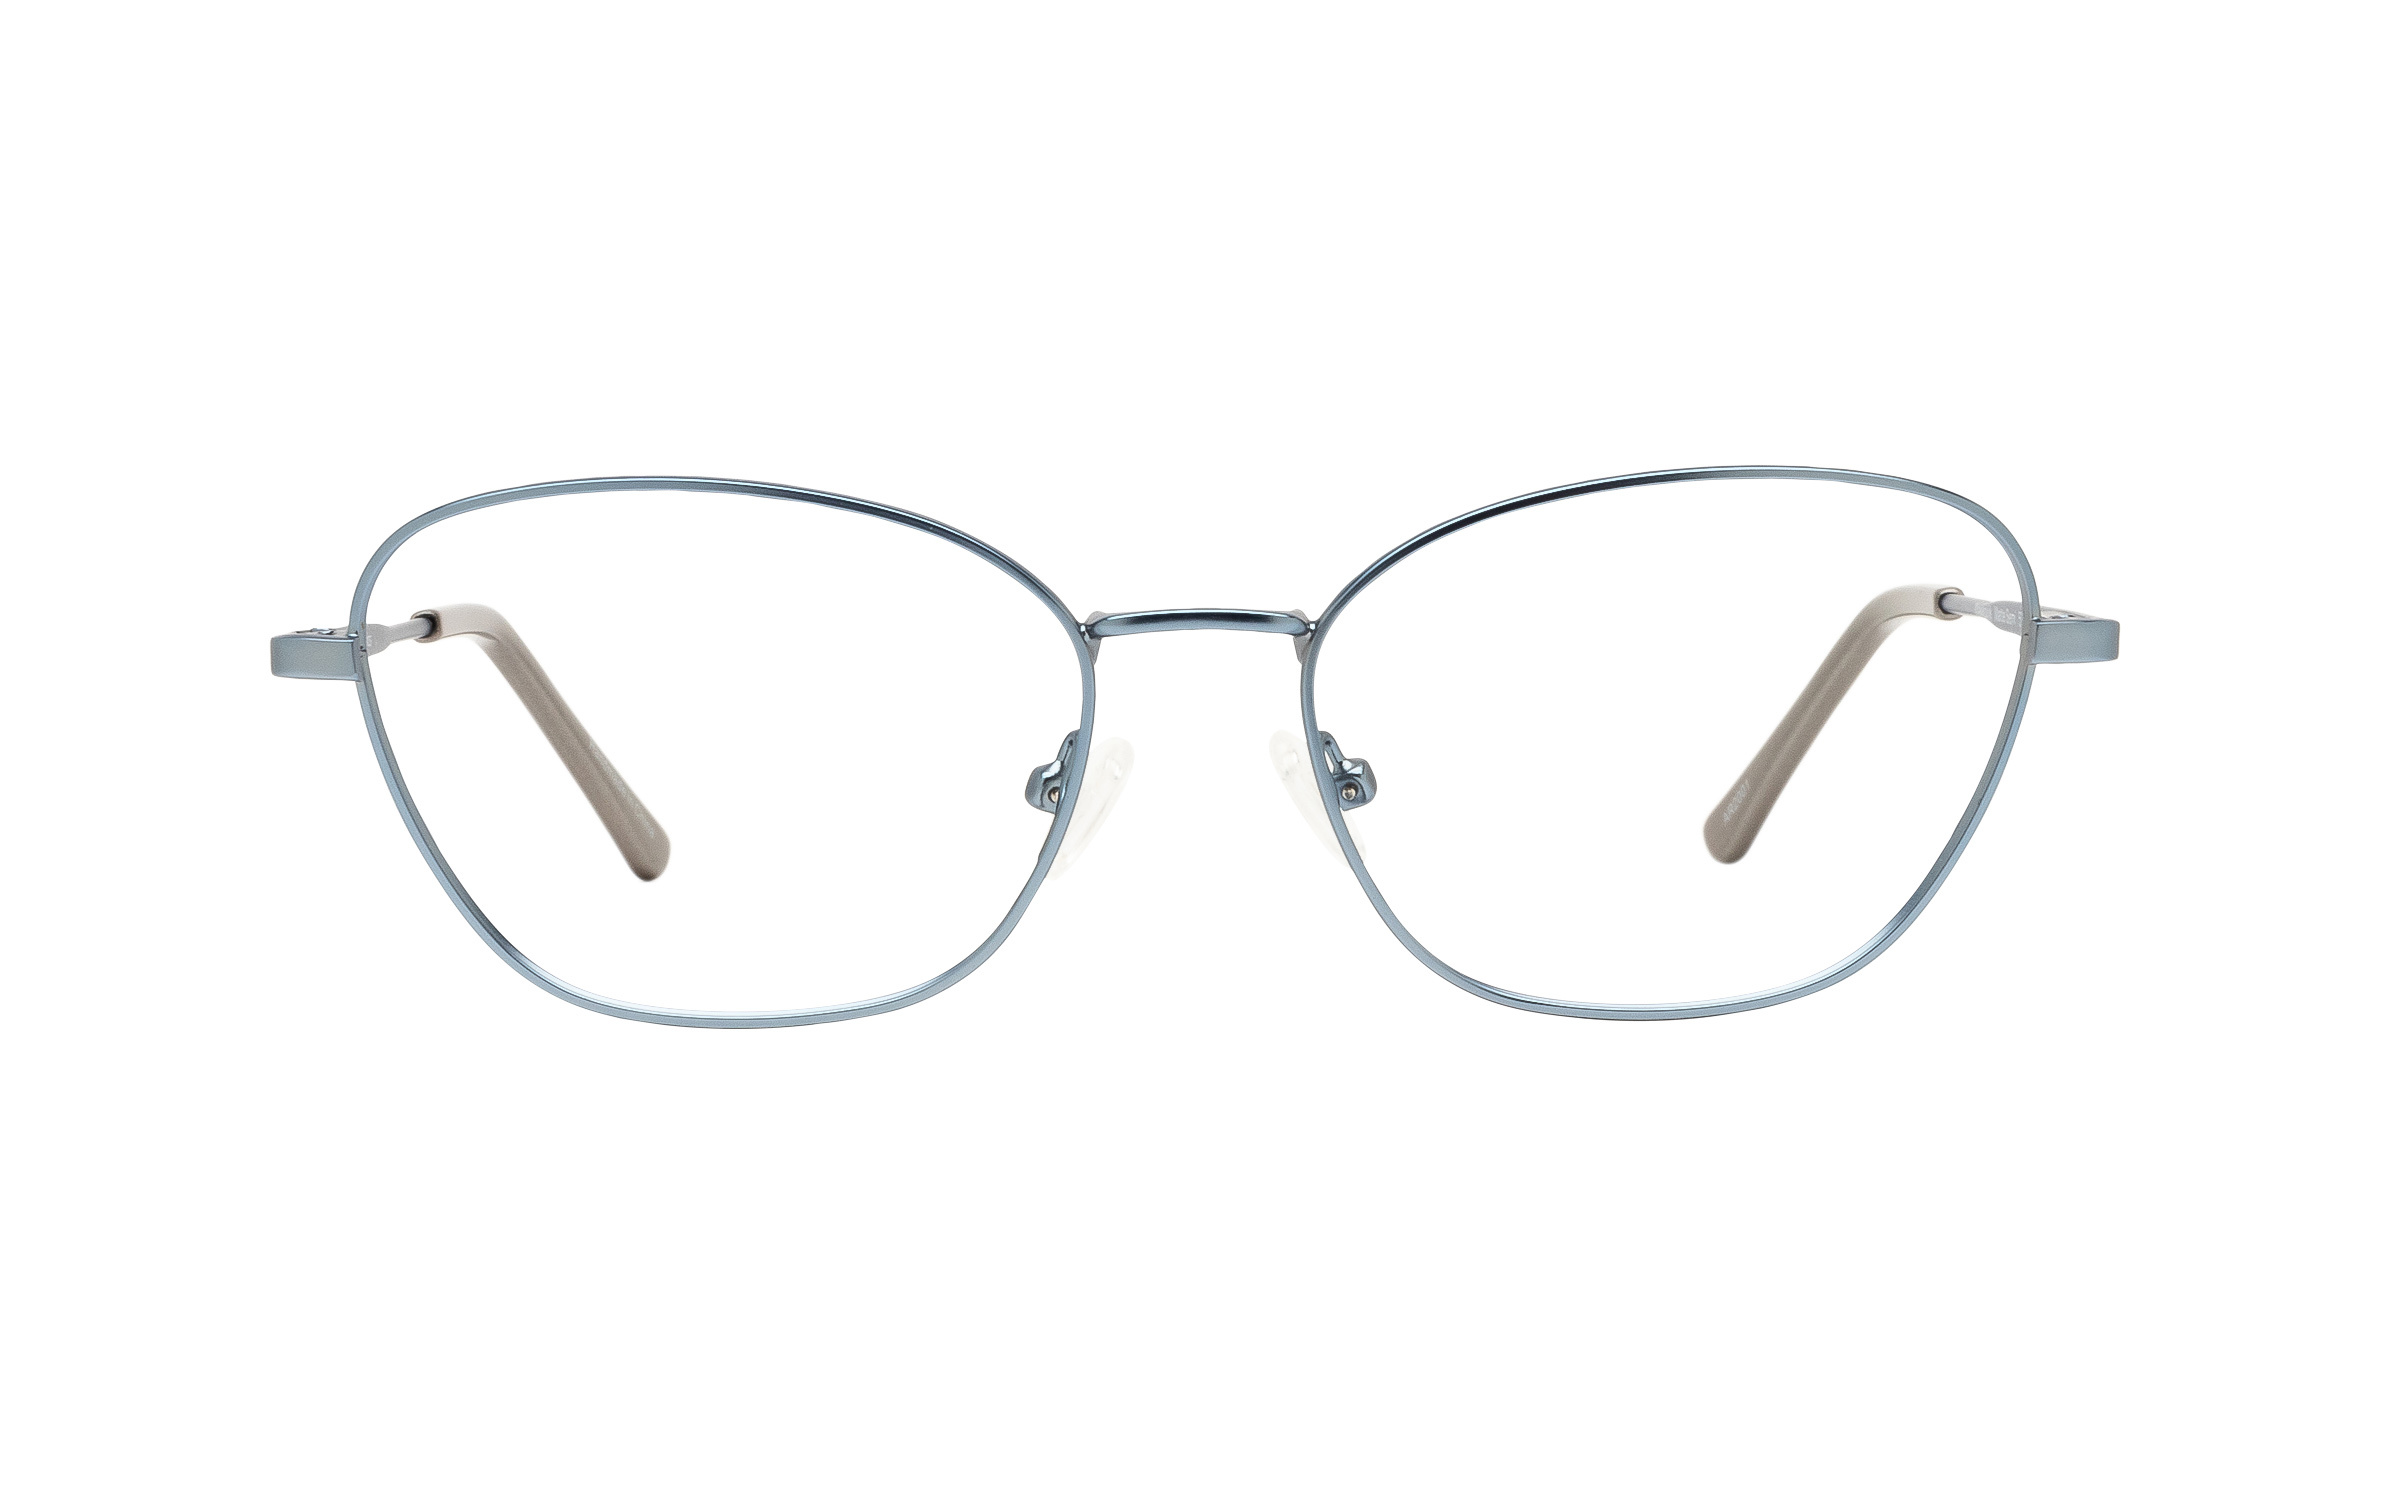 http://www.coastal.com/ - Clearly Basics Makkovik CLS065 C04 (53) Eyeglasses and Frame in Satin Blue | Acetate/Metal – Online Coastal